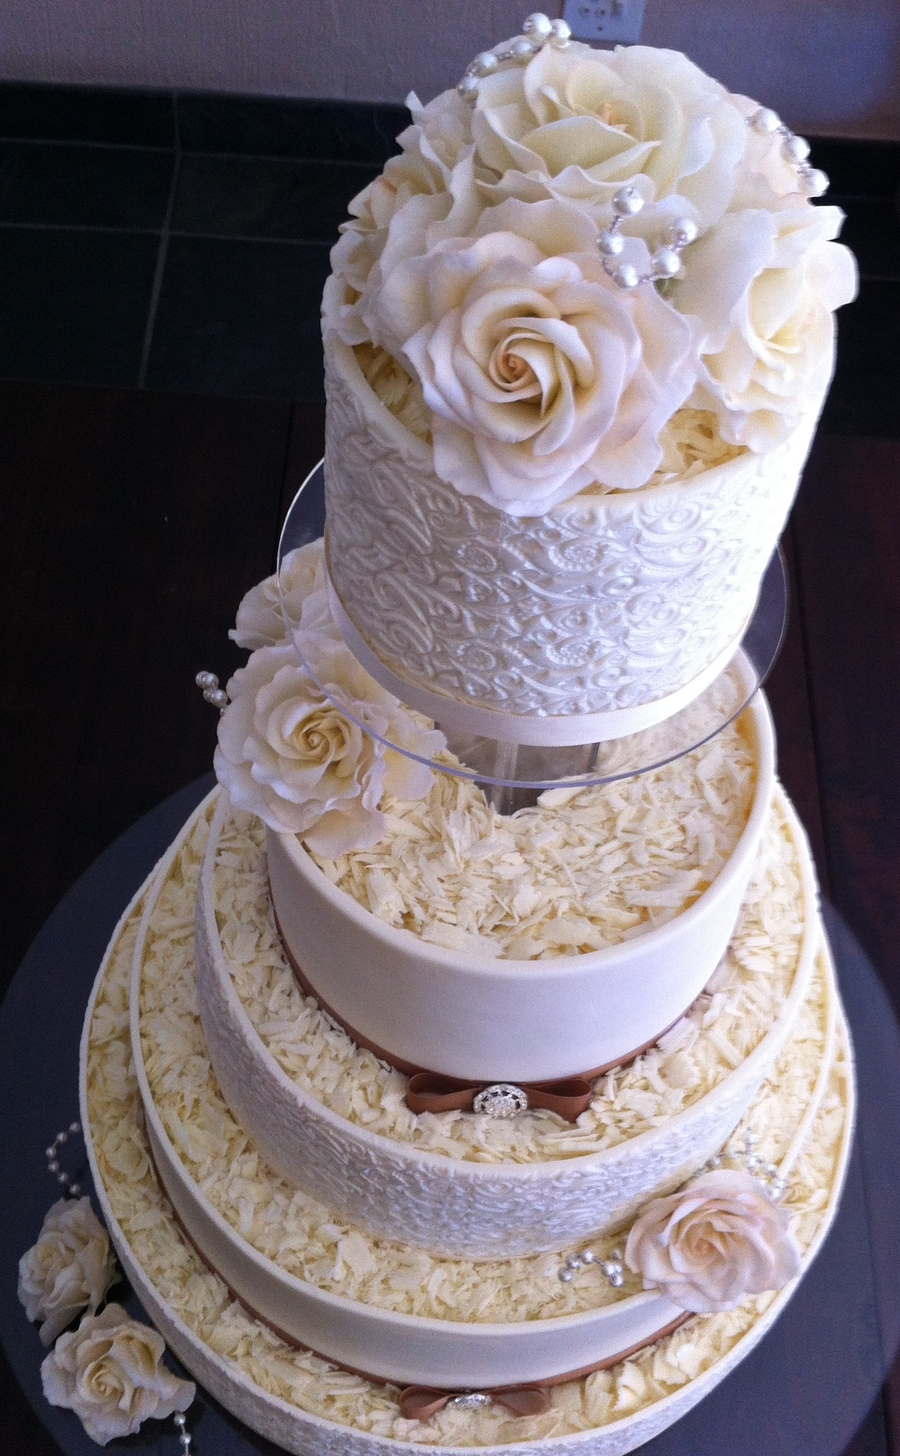 white and chocolate wedding cake white chocolate wedding cake cakecentral 27203